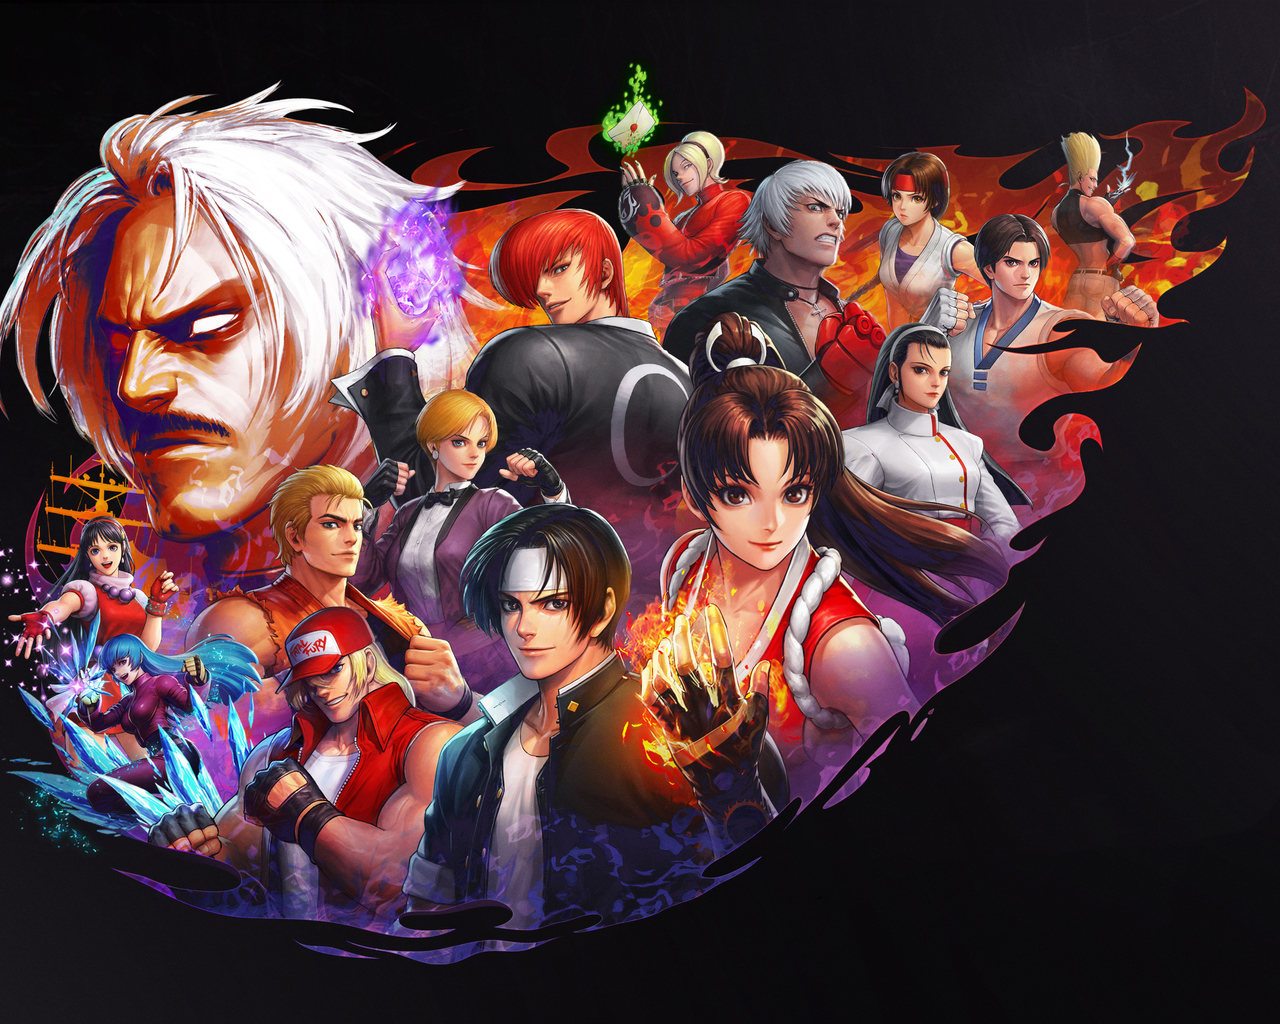 King of Fighters All Star sur - Premières impressions